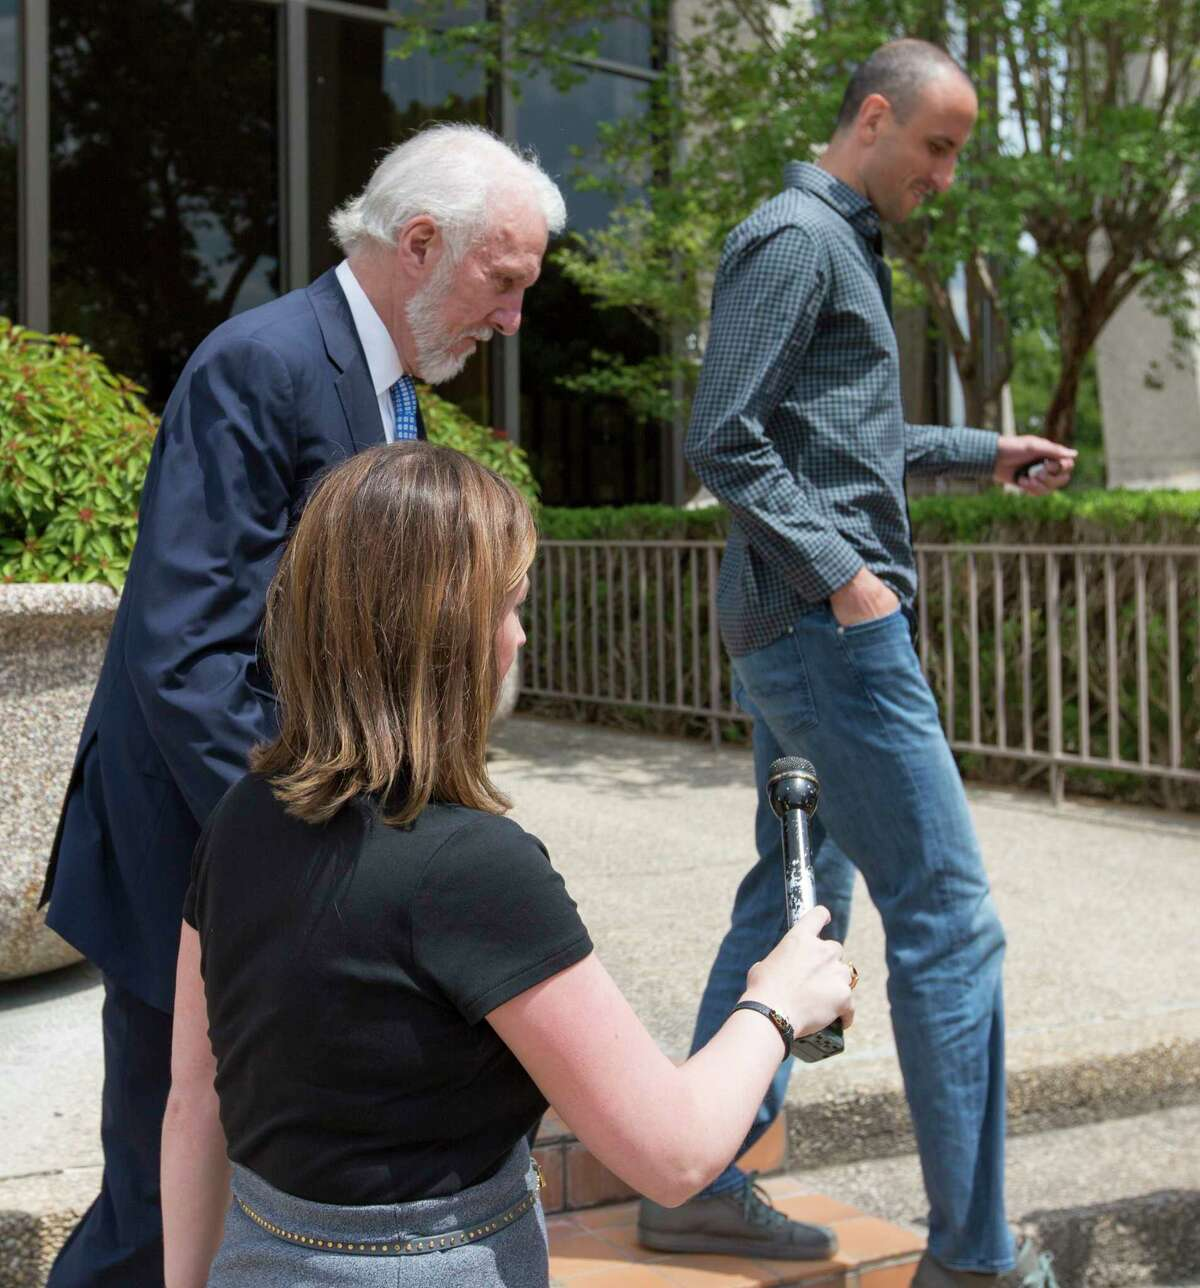 Spurs coach Gregg Popovich, left, and player Manu Ginobili skirt around reporters as they leave the federal courthouse in San Antonio Tuesday, June 27, 2017 after attending a sentencing hearing in Tim Duncan's legal case against Duncan's former financial adviser Charles Banks.